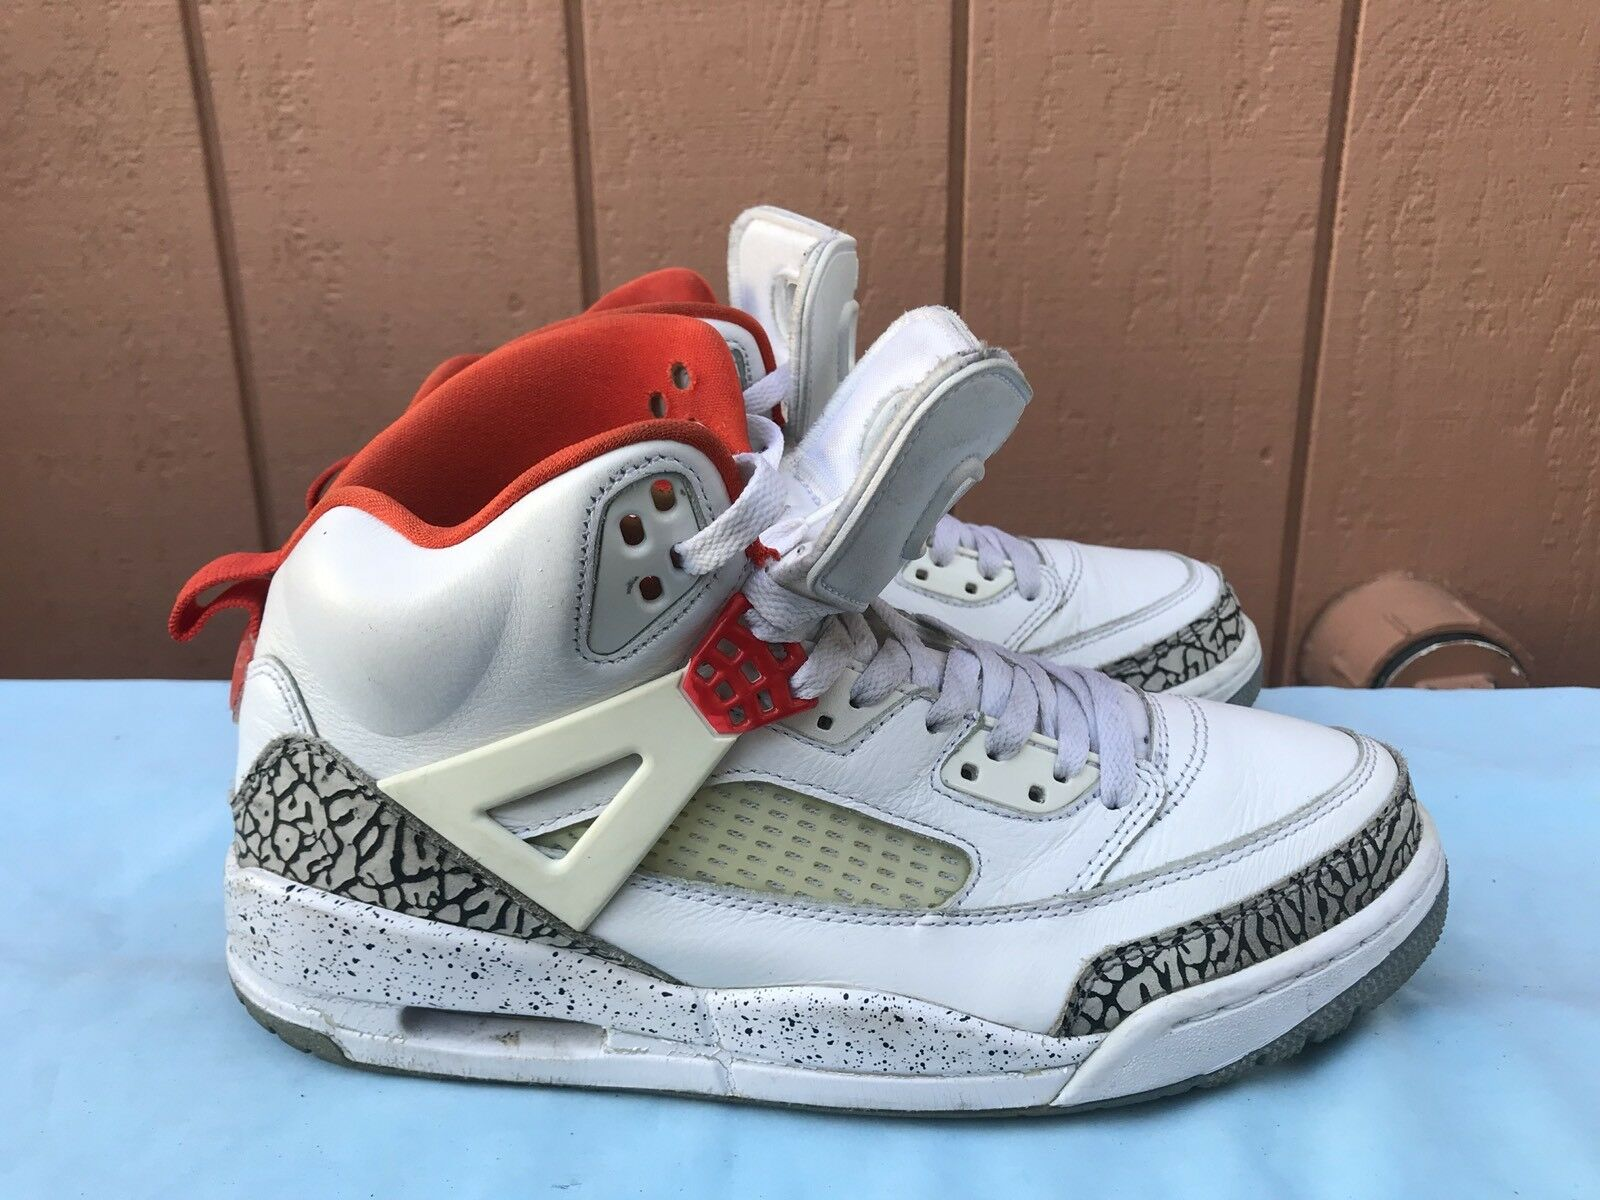 The latest discount shoes for men and women RARE NIKE AIR JORDAN SPIZIKE iD WHITE CEMENT Price reduction